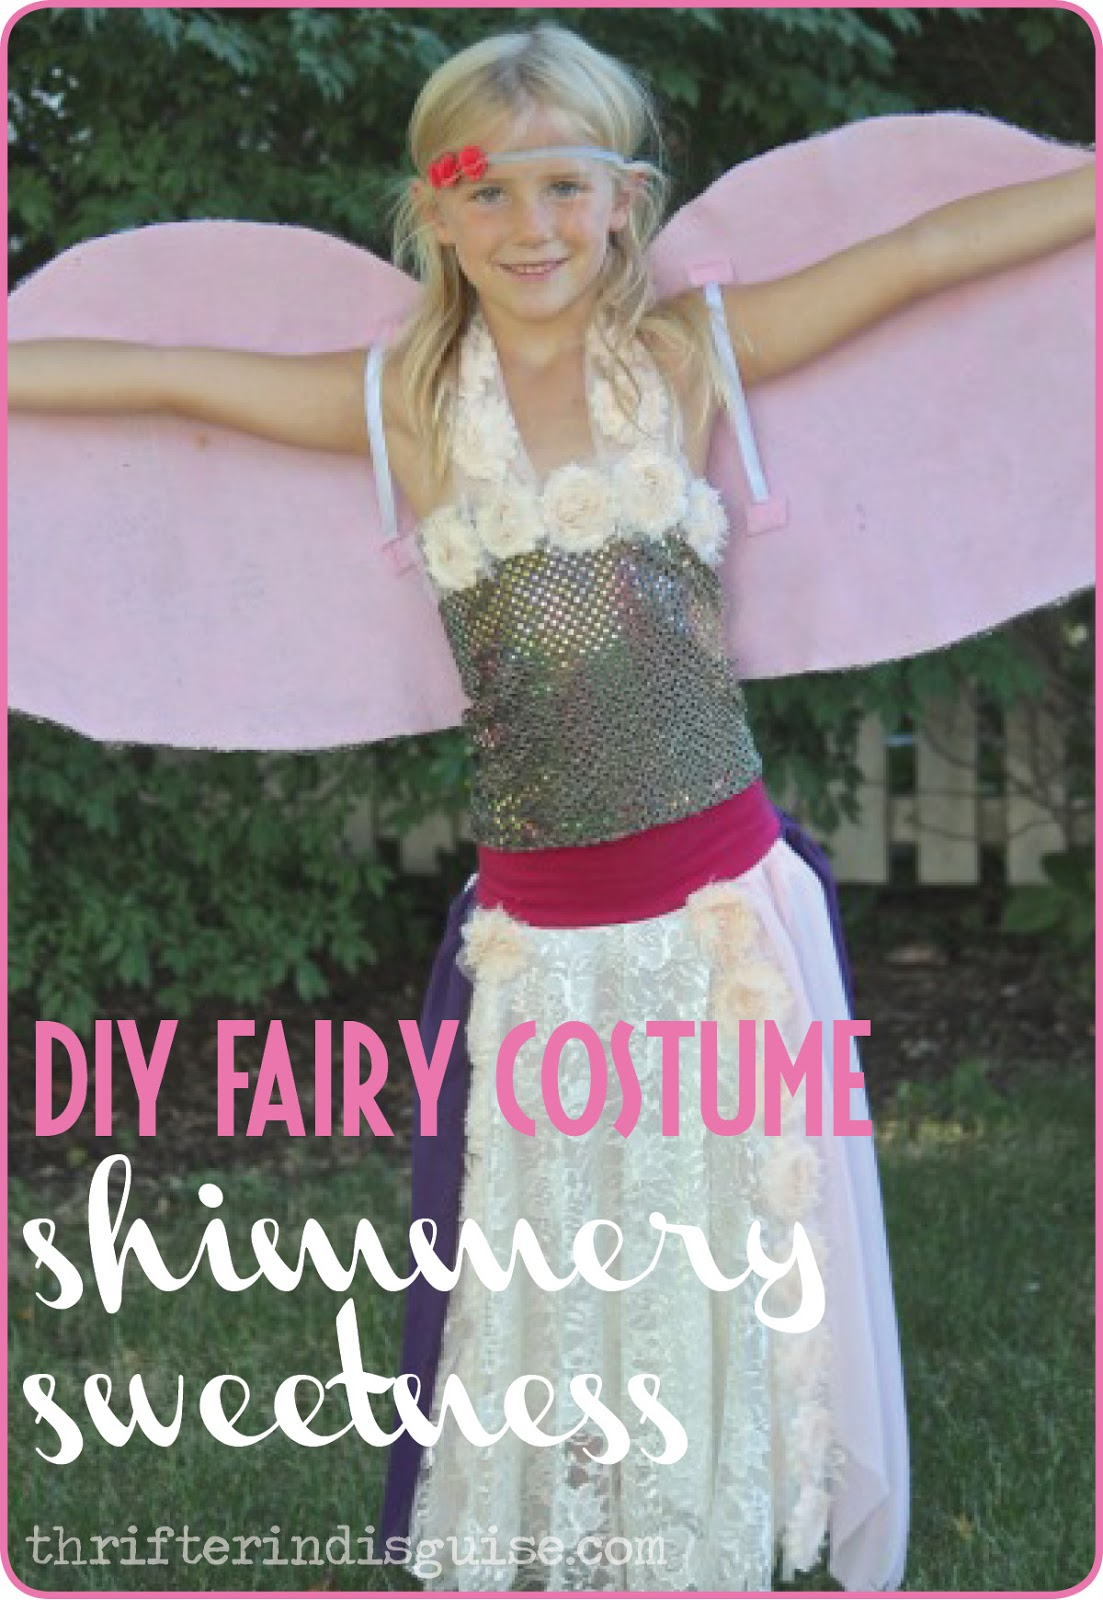 DIY Fairy Dress Ideas  sc 1 st  A Thrifter in Disguise & A Thrifter in Disguise: DIY Fairy Costume Part 2: Shimmery Top